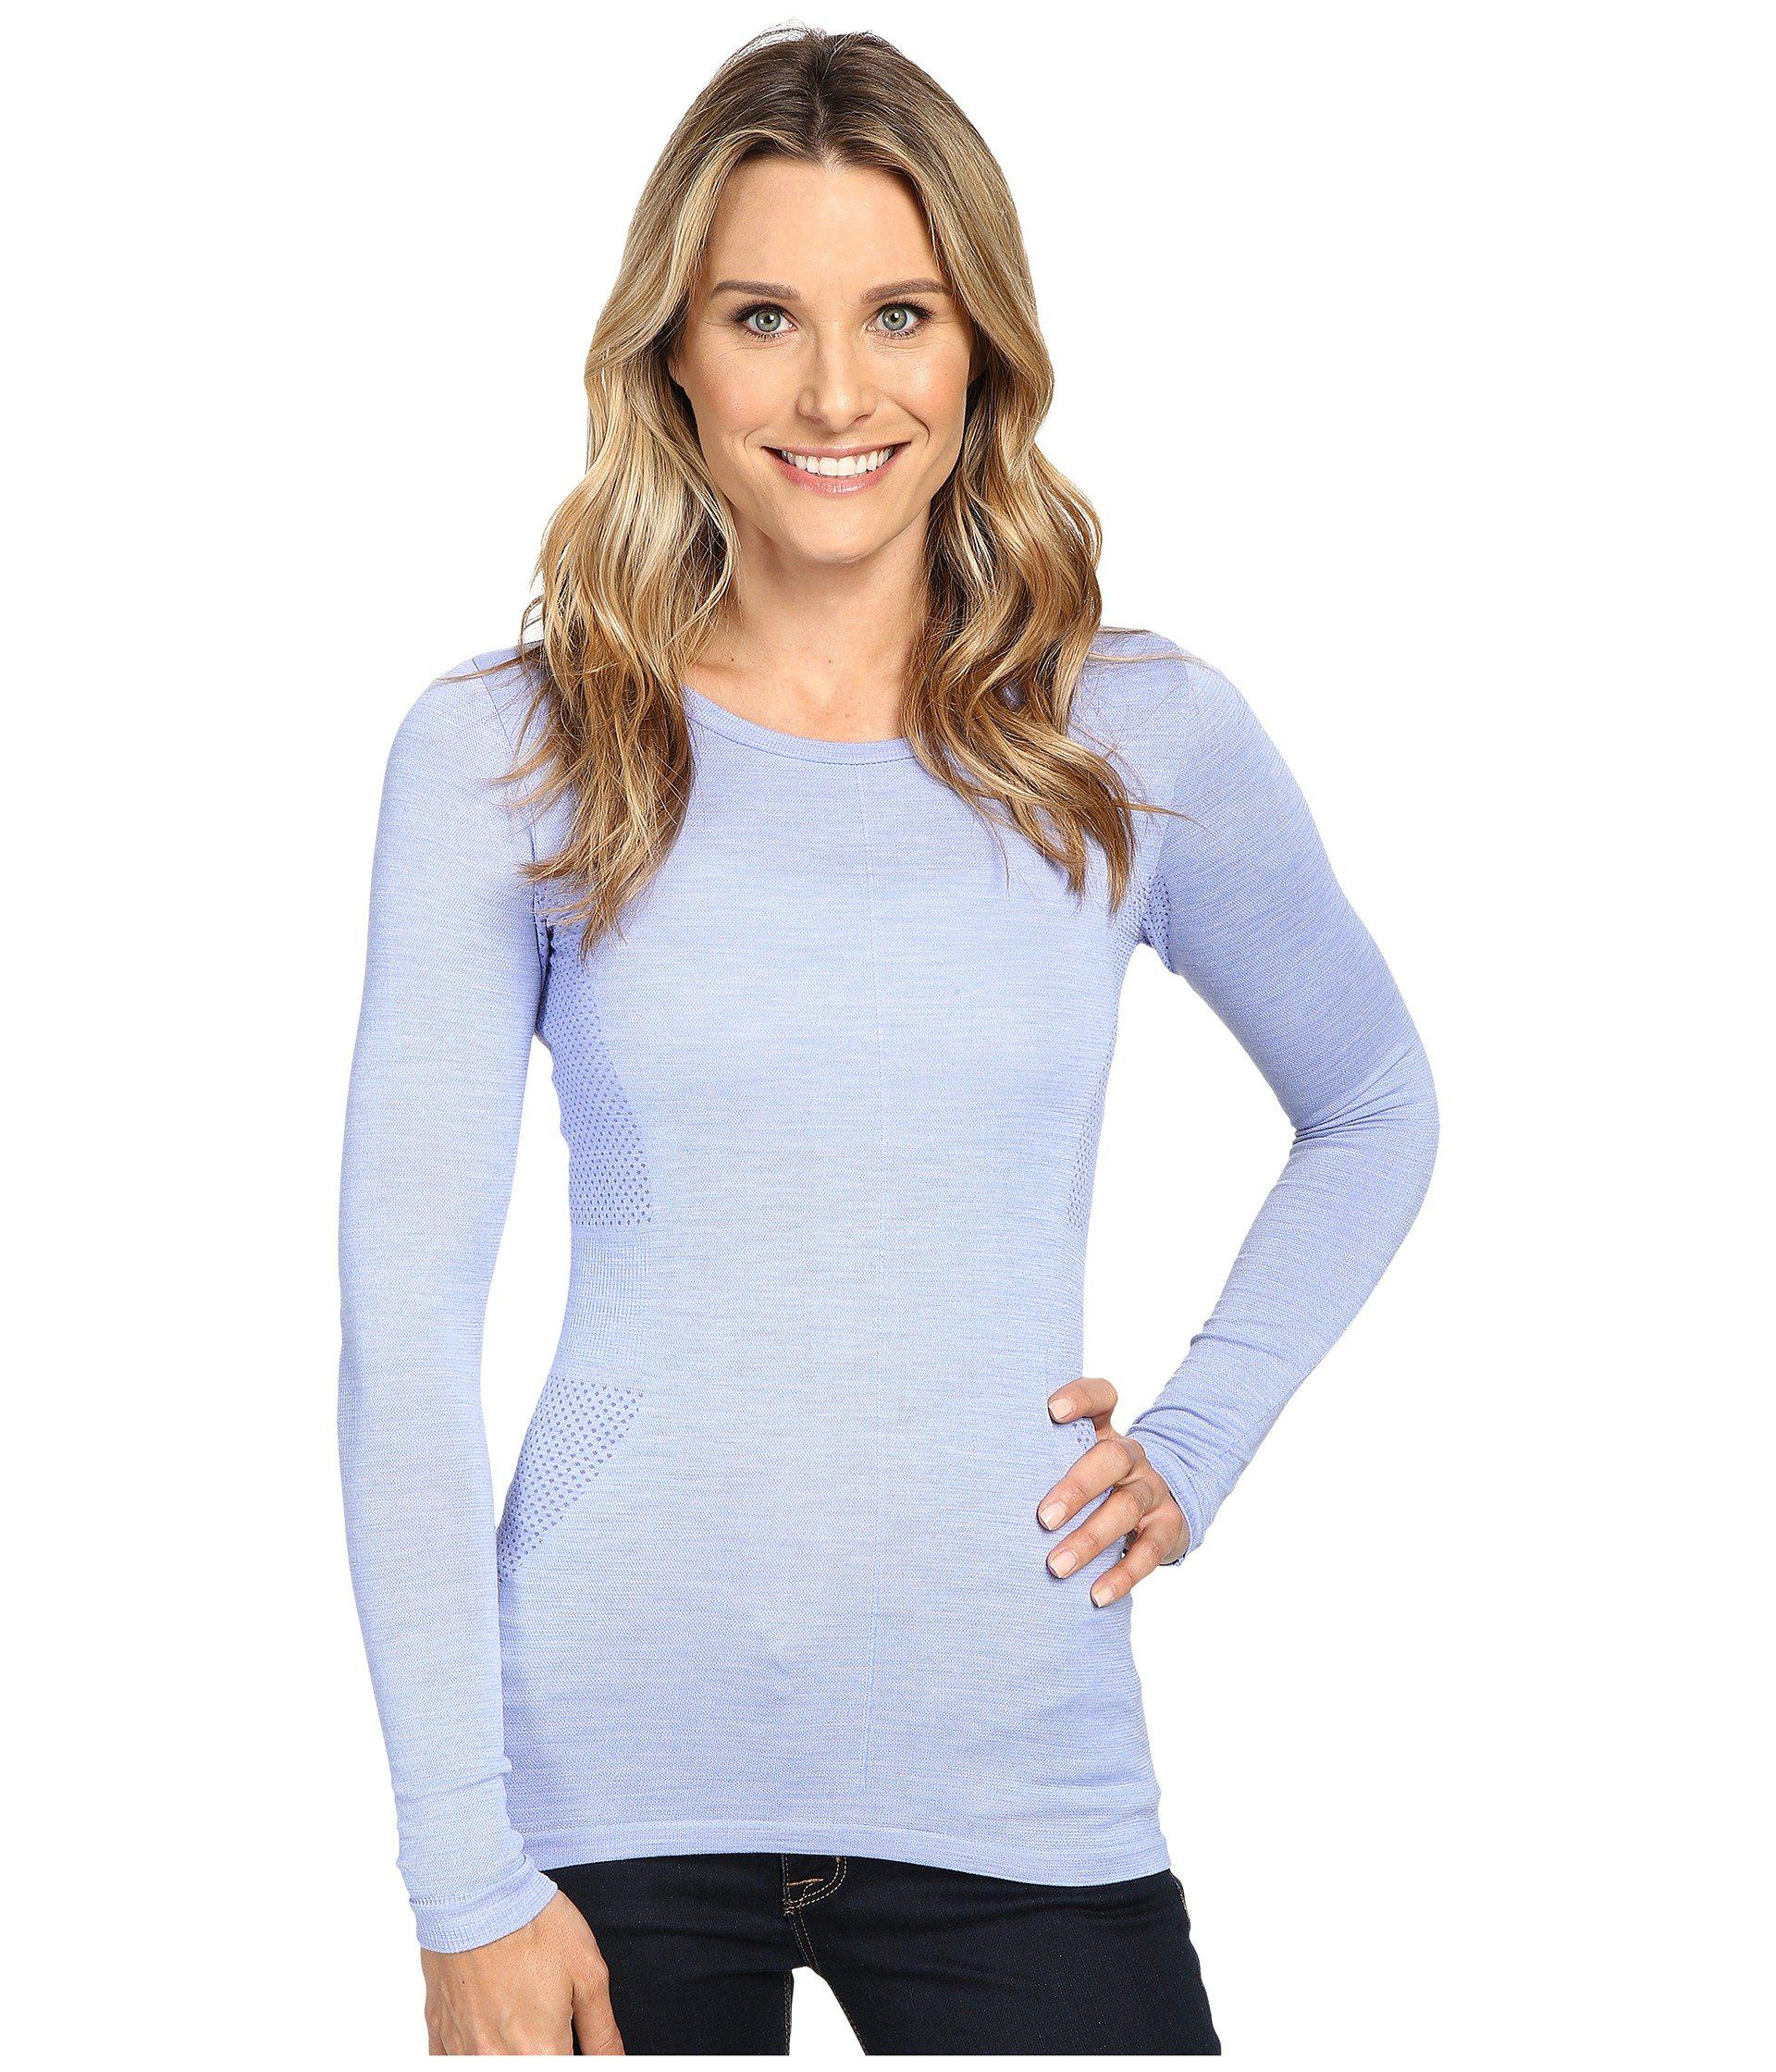 The North Face. Women's Blue Long Sleeve Go Seamless Wool Top